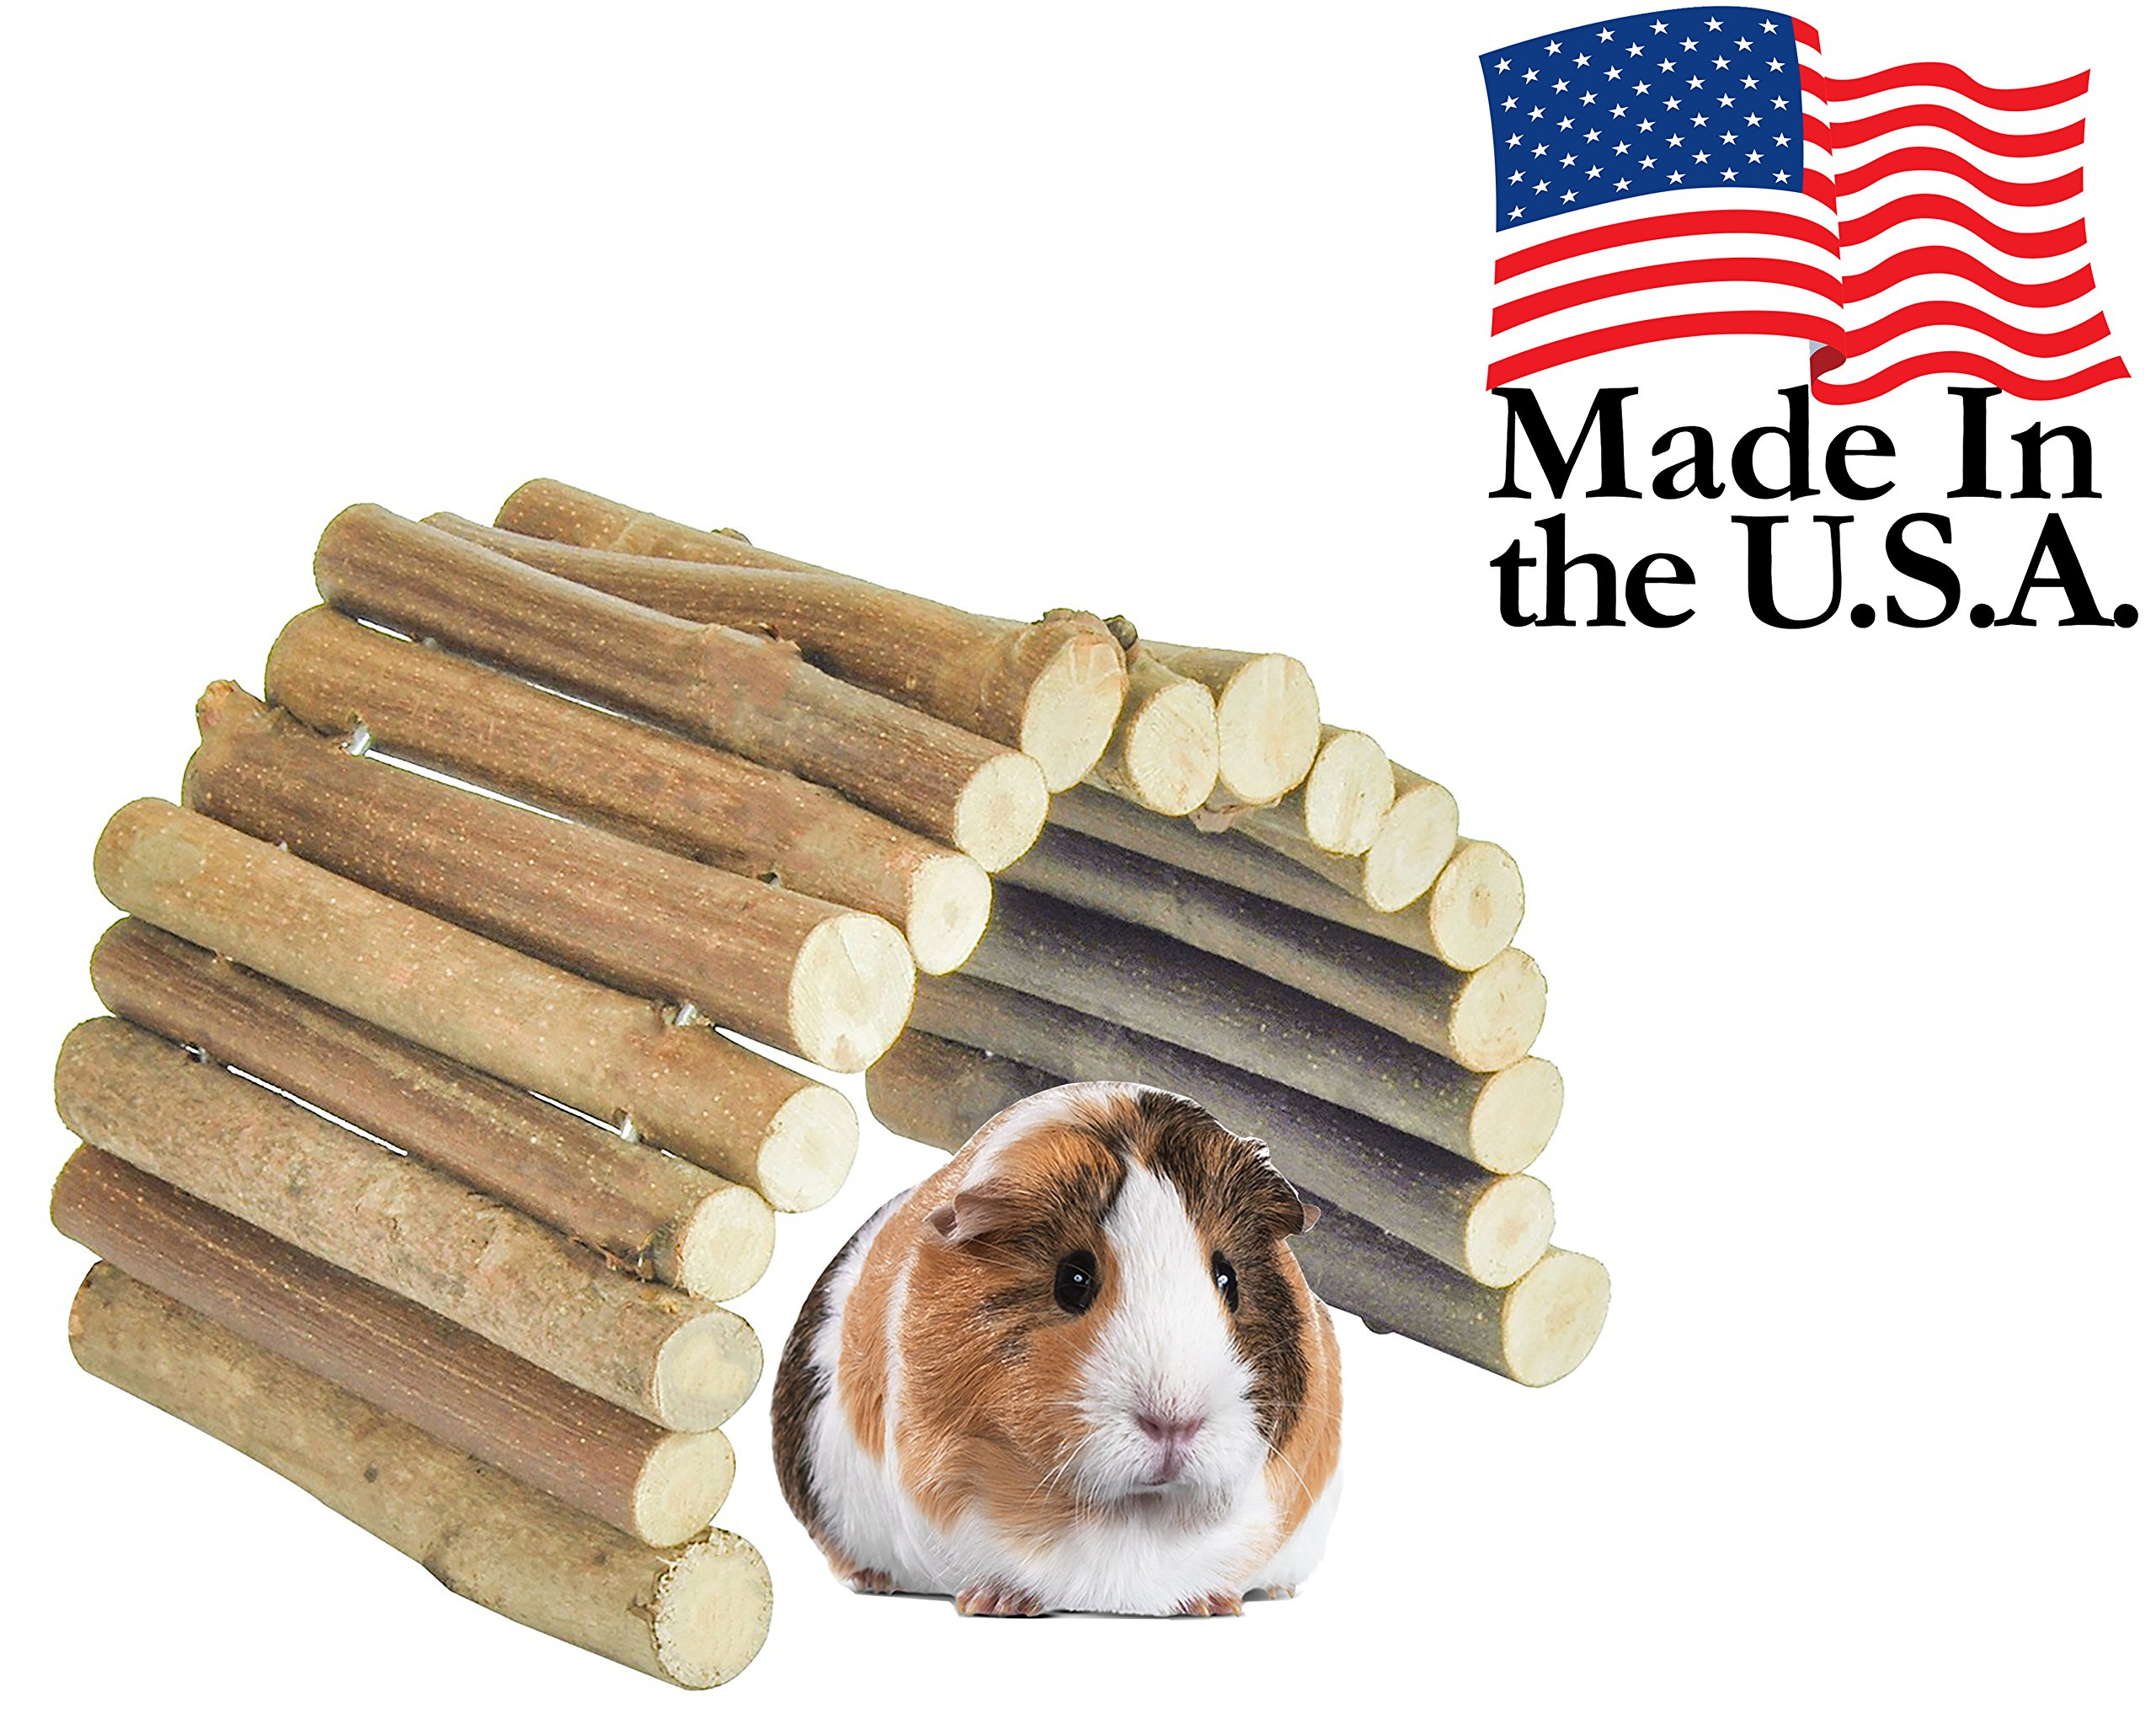 Flexible All Natural Wood Bridge - 14 x 9 Inches - Extra Large - Tunnel and Hideout for Guinea Pigs, Ferrets, Chinchillas and Other Small Animals by Cuteepets